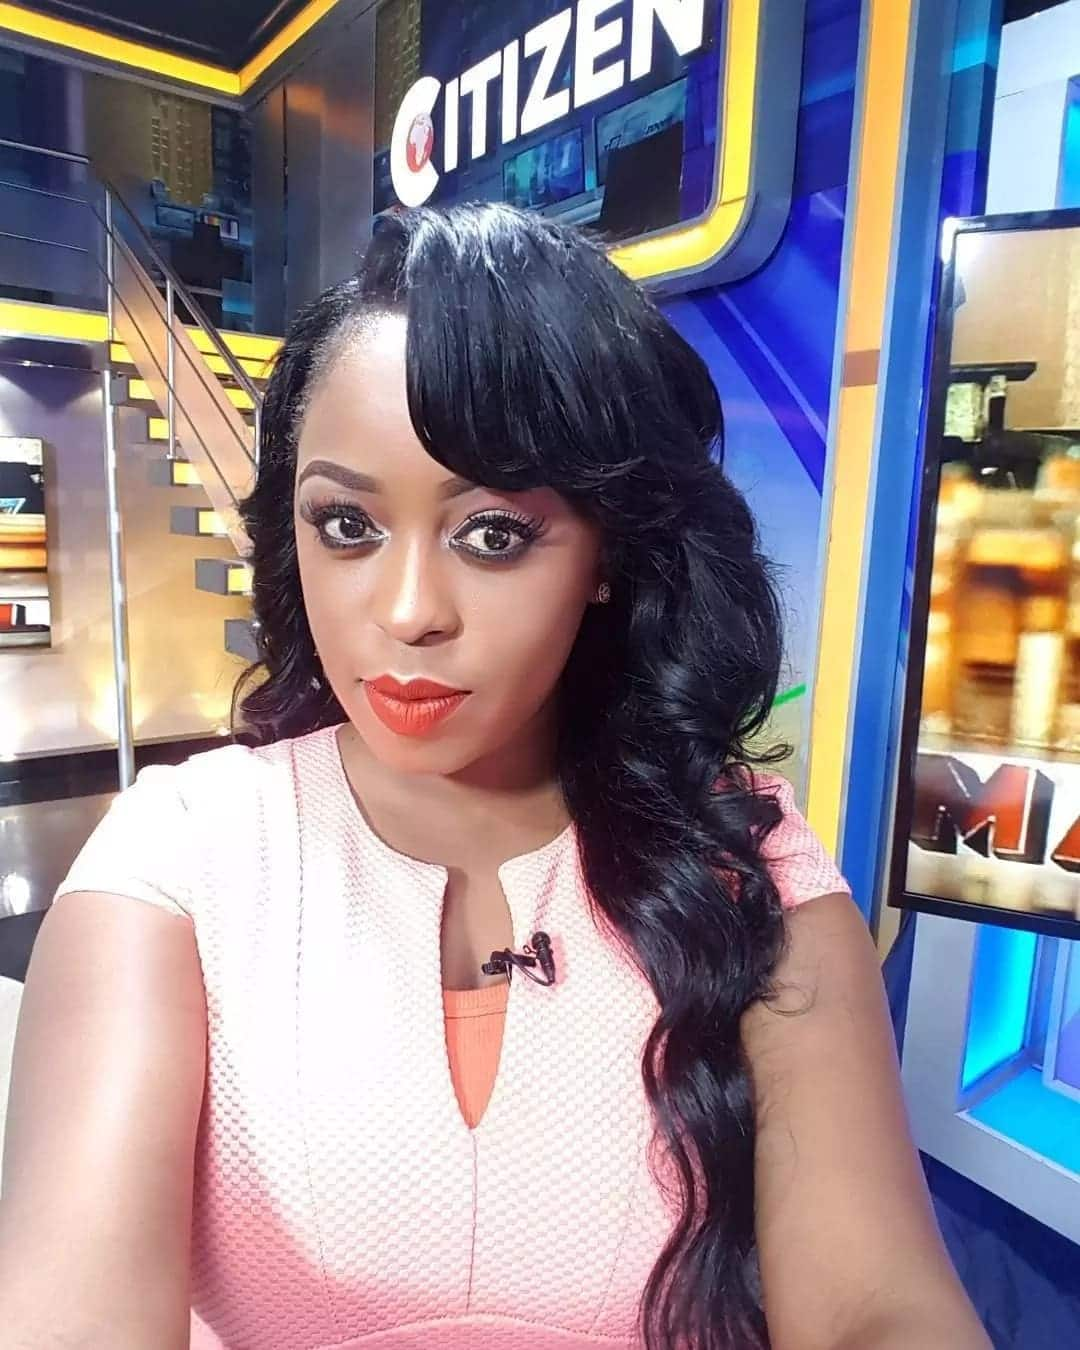 Hottest Kenyan female celebrities Kenyan celebrities and their cars Richest Kenyan celebrities List of Kenyan celebrities